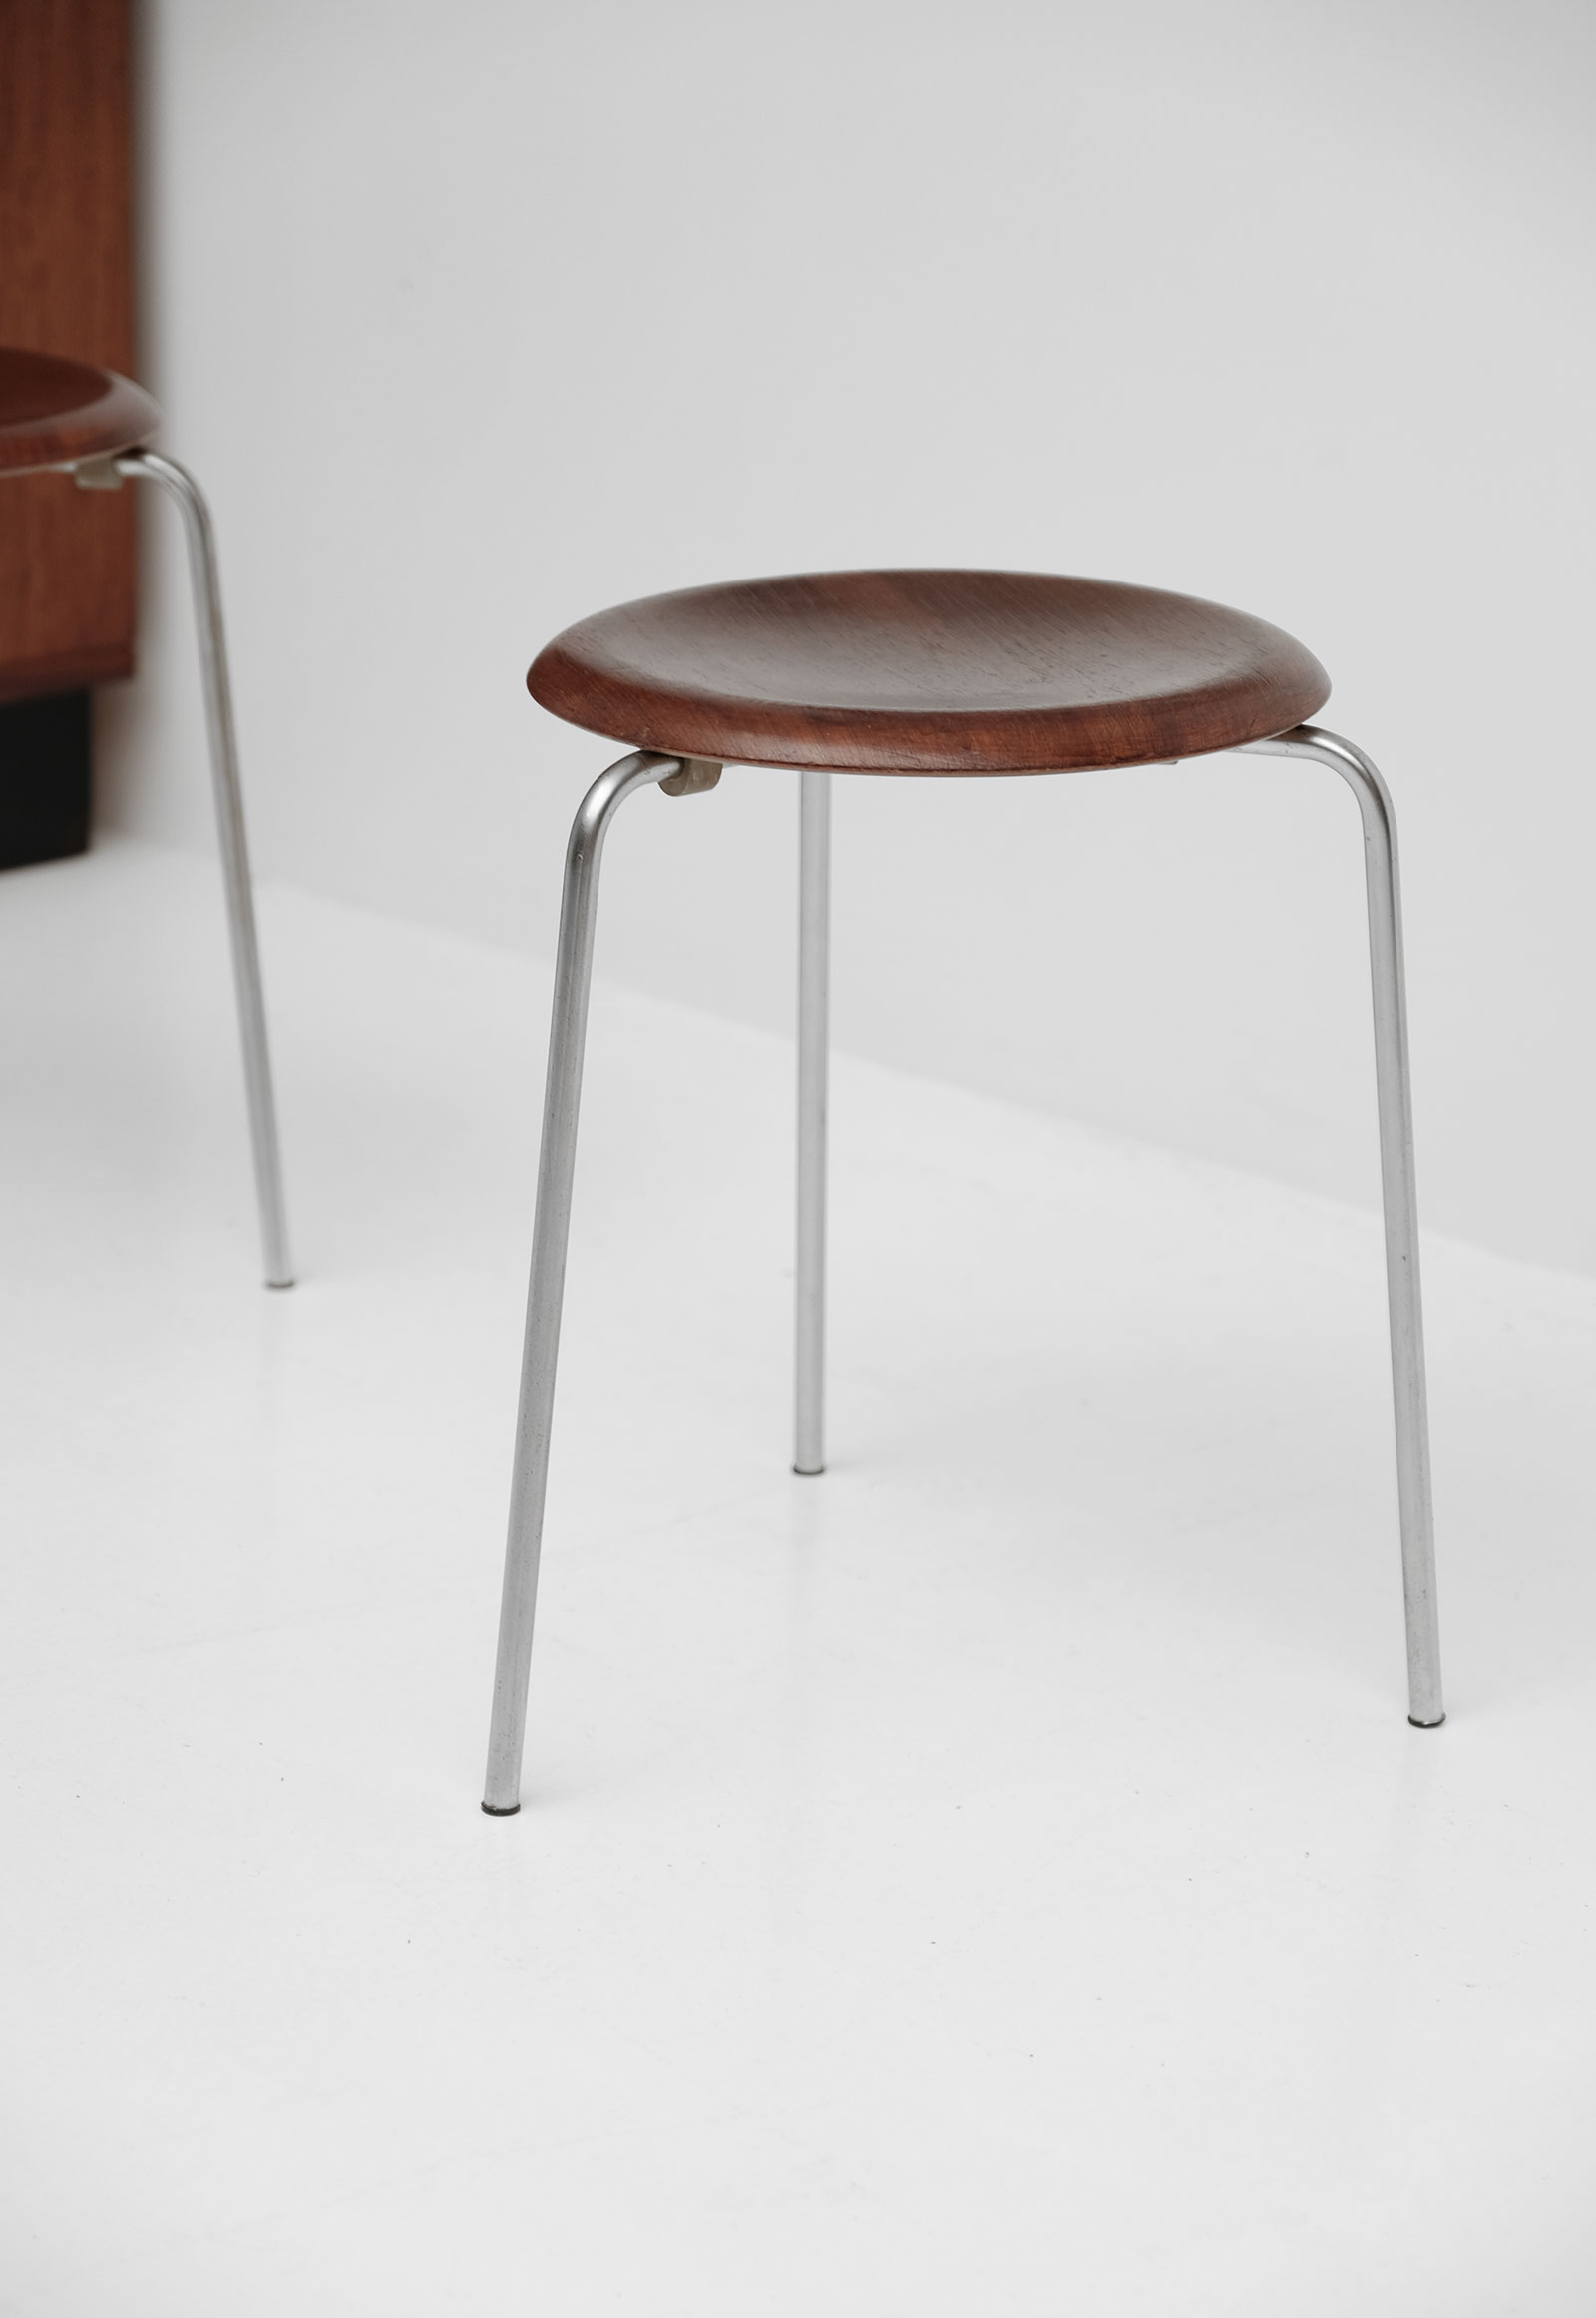 Two Arne Jacobsen Dot Stacking Stools